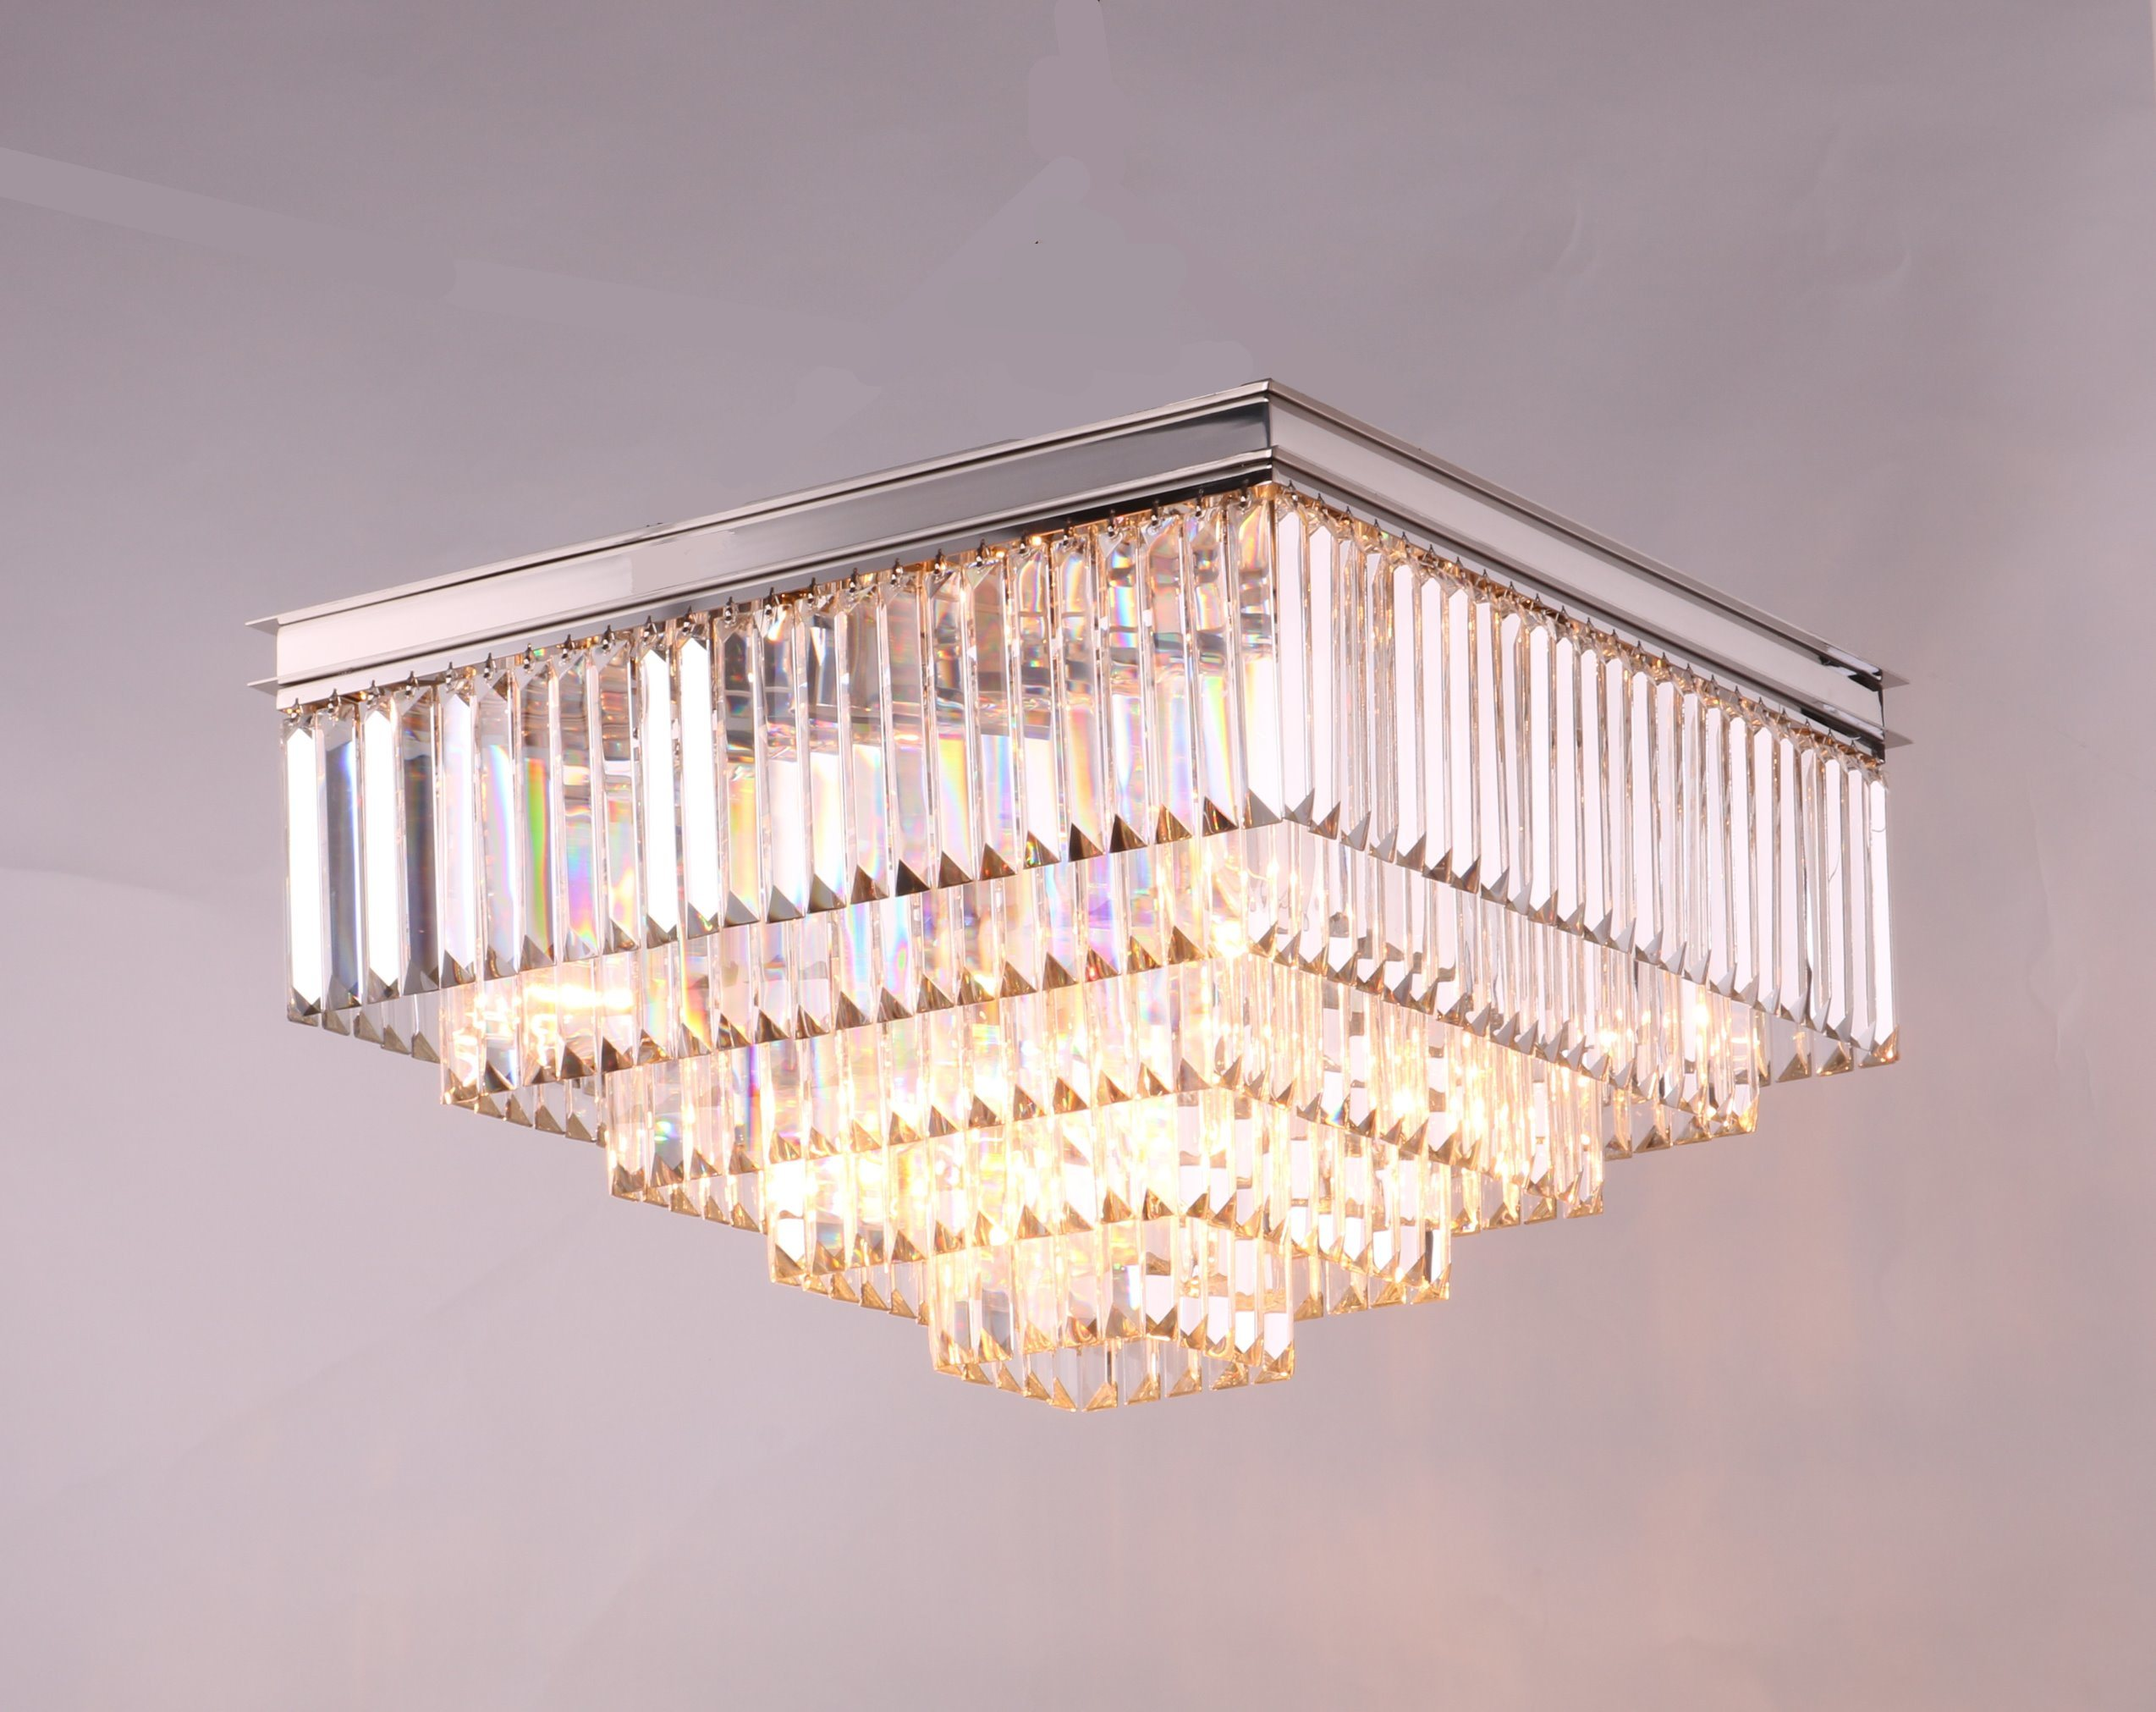 Modern Lighting Quotes China Led Lamp Flushmount Lighting Contemporary Lighting